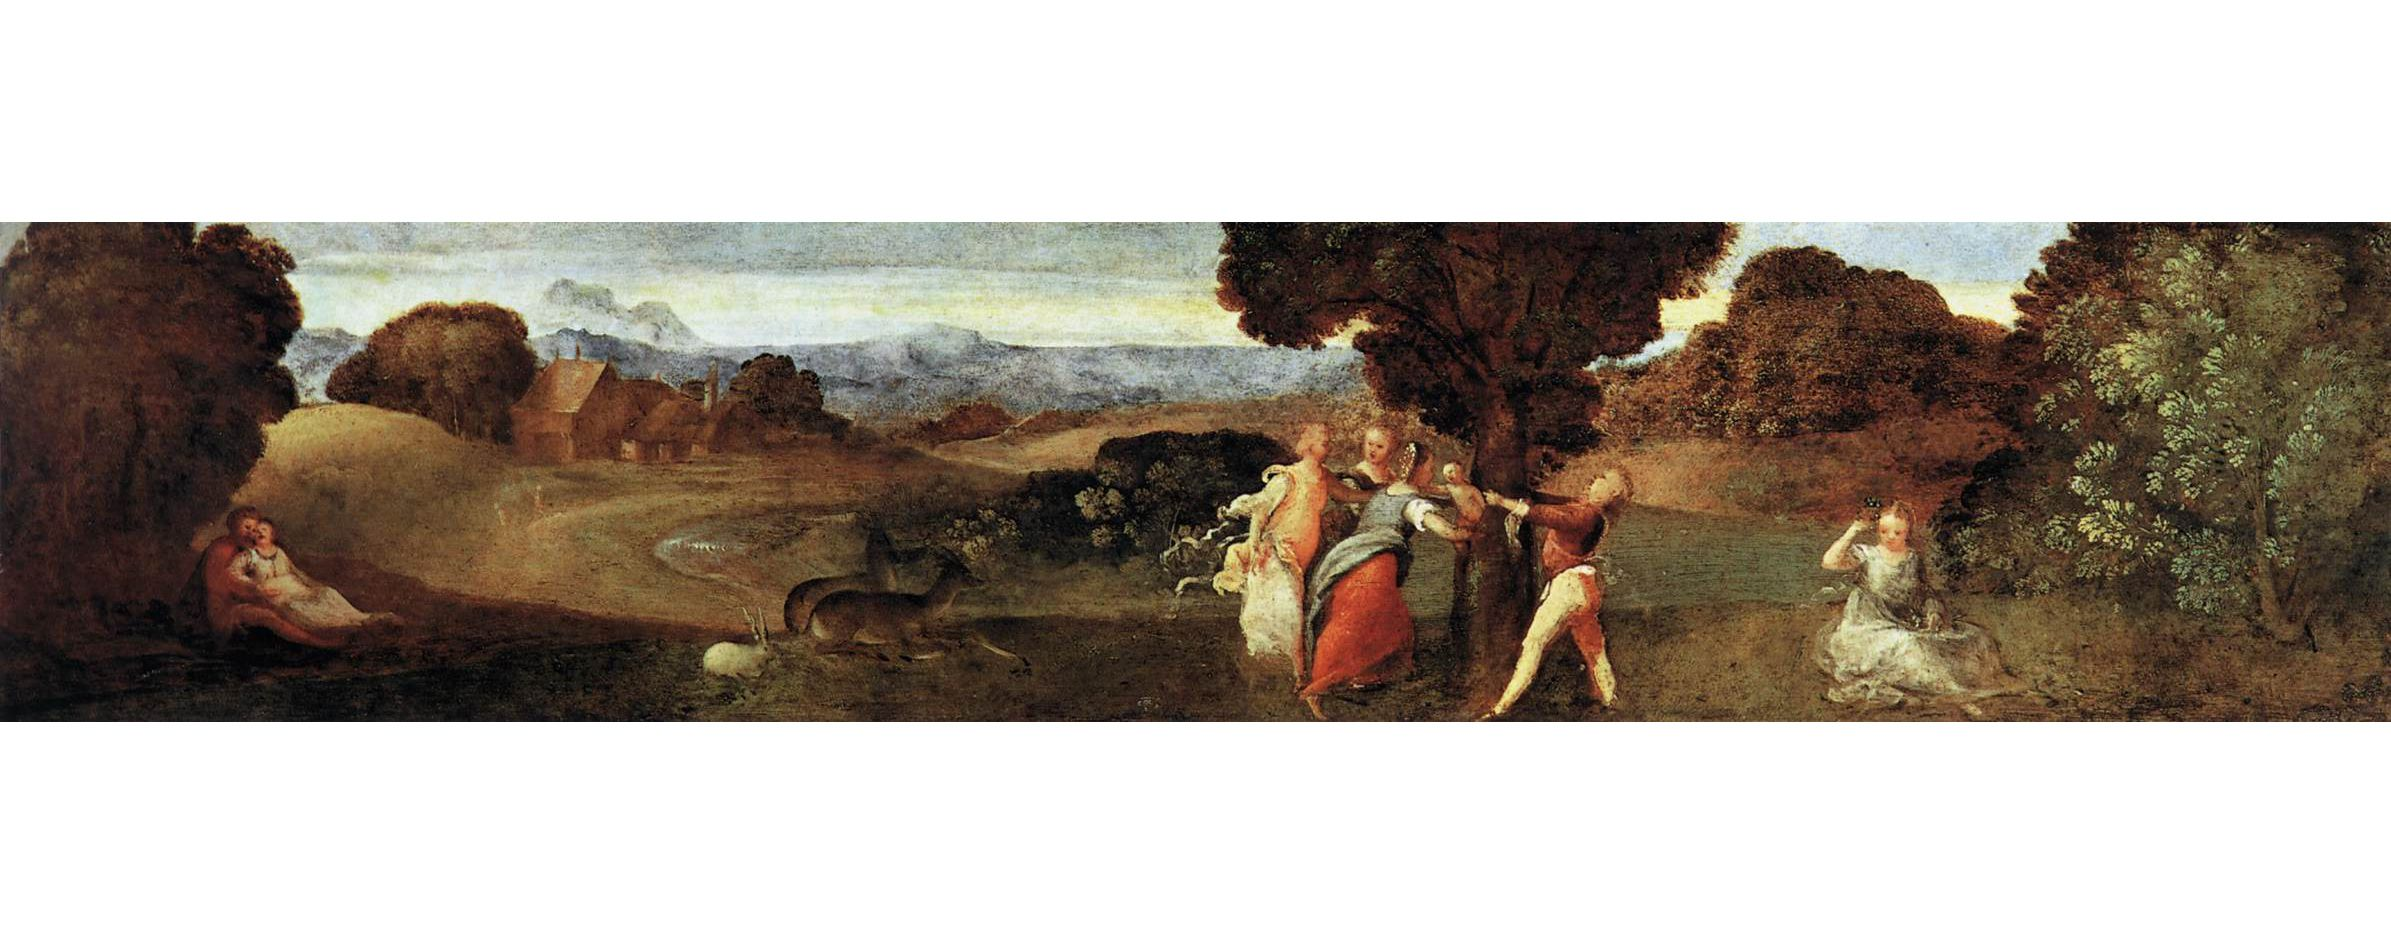 Titian (Tiziano Vecellio) : The Birth of Adonis (Musei Civici Agli Eremitani  (Italy - Padua)) 1490-1576 ティツィアーノ・ヴェチェッリオ